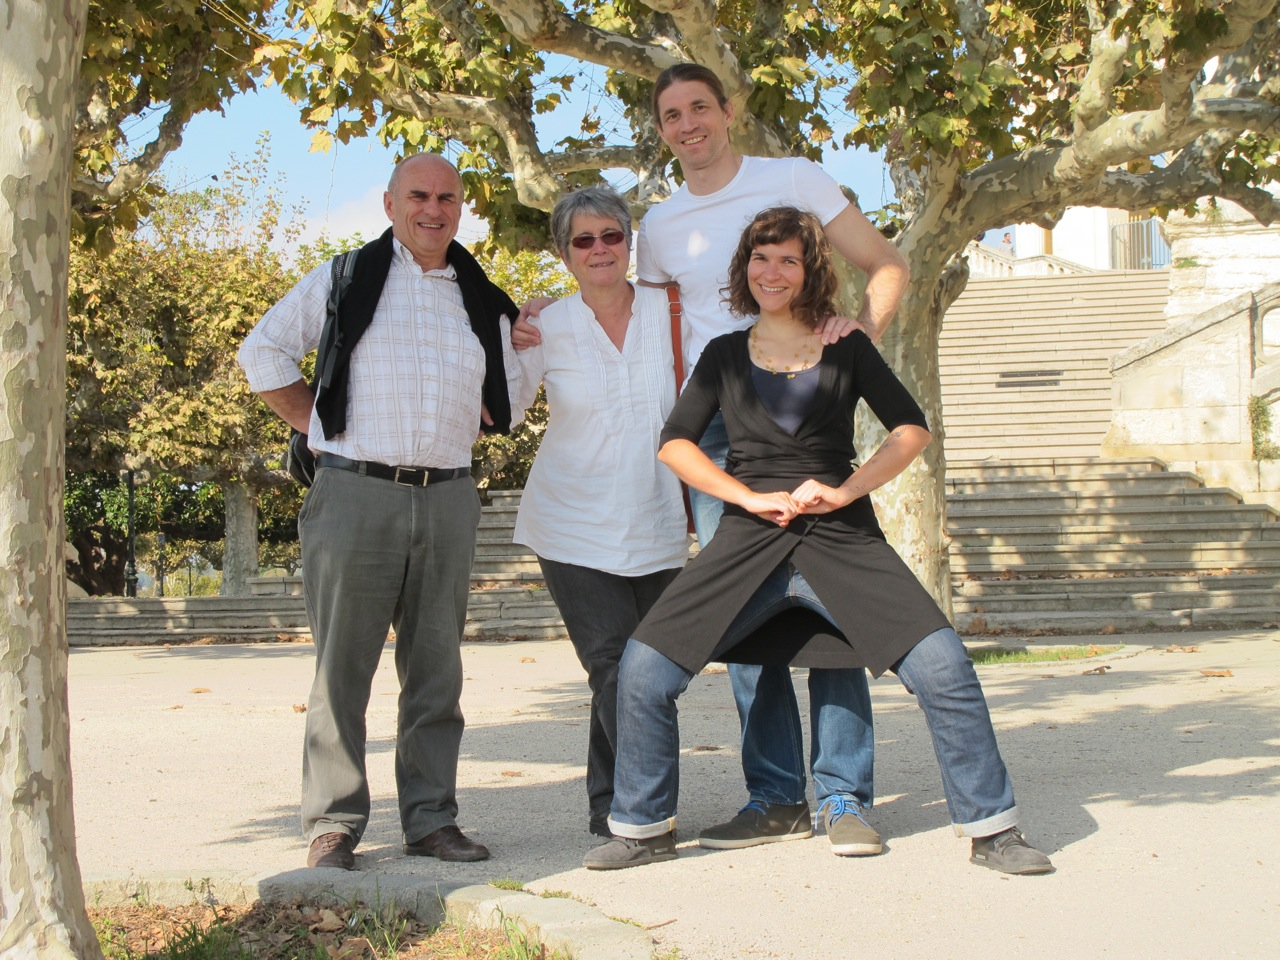 With family in France